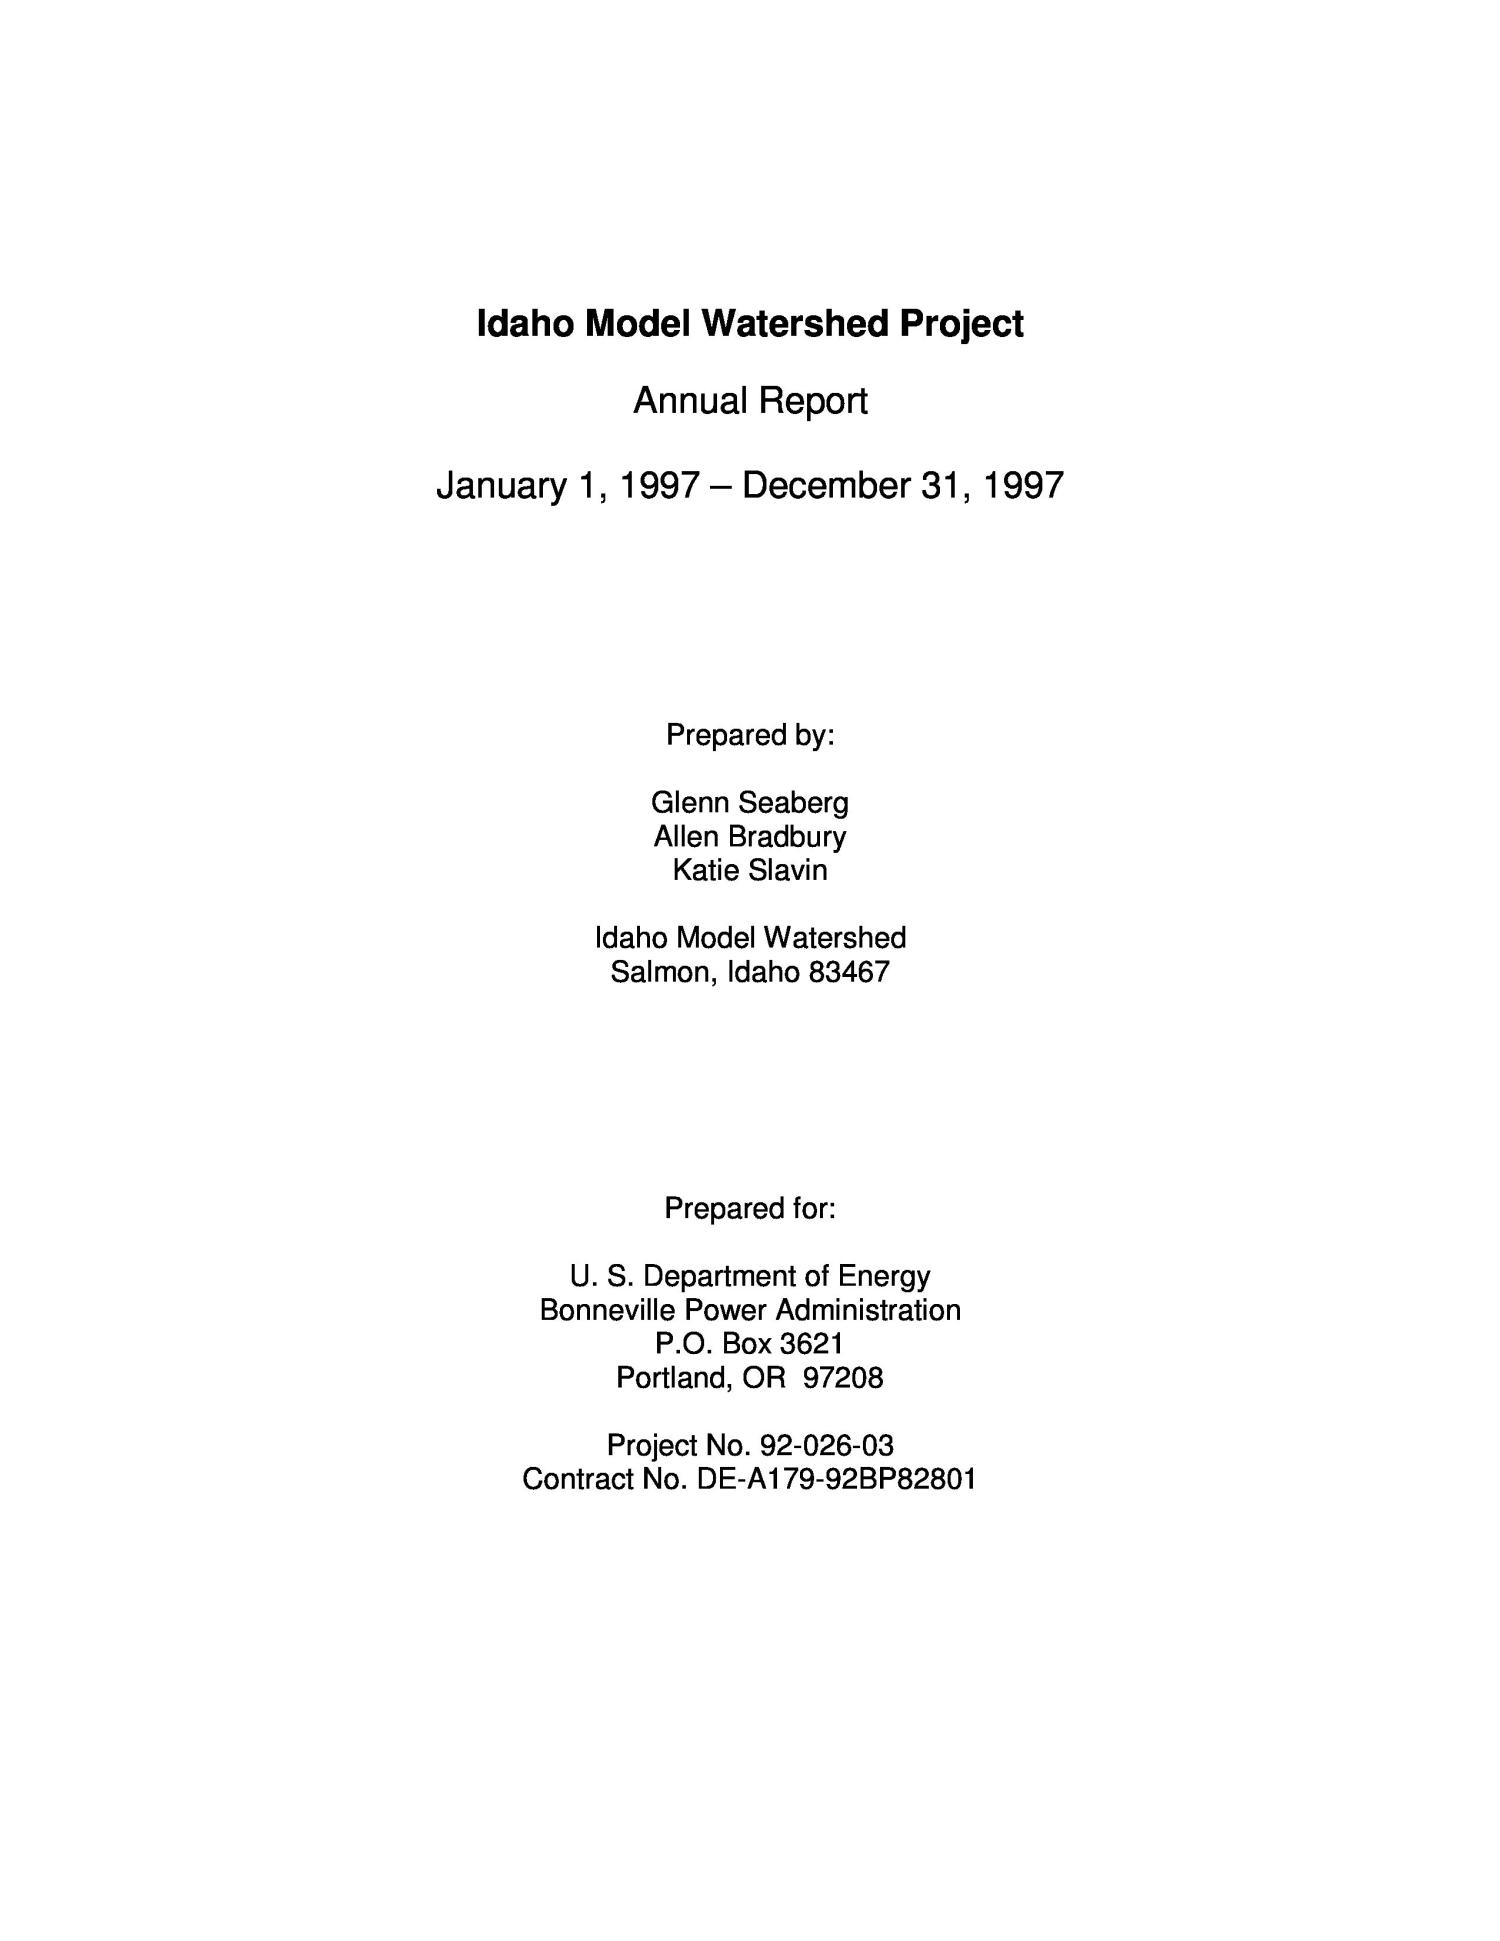 Granosol Idaho Model Watershed Project Annual Report To The Bonneville